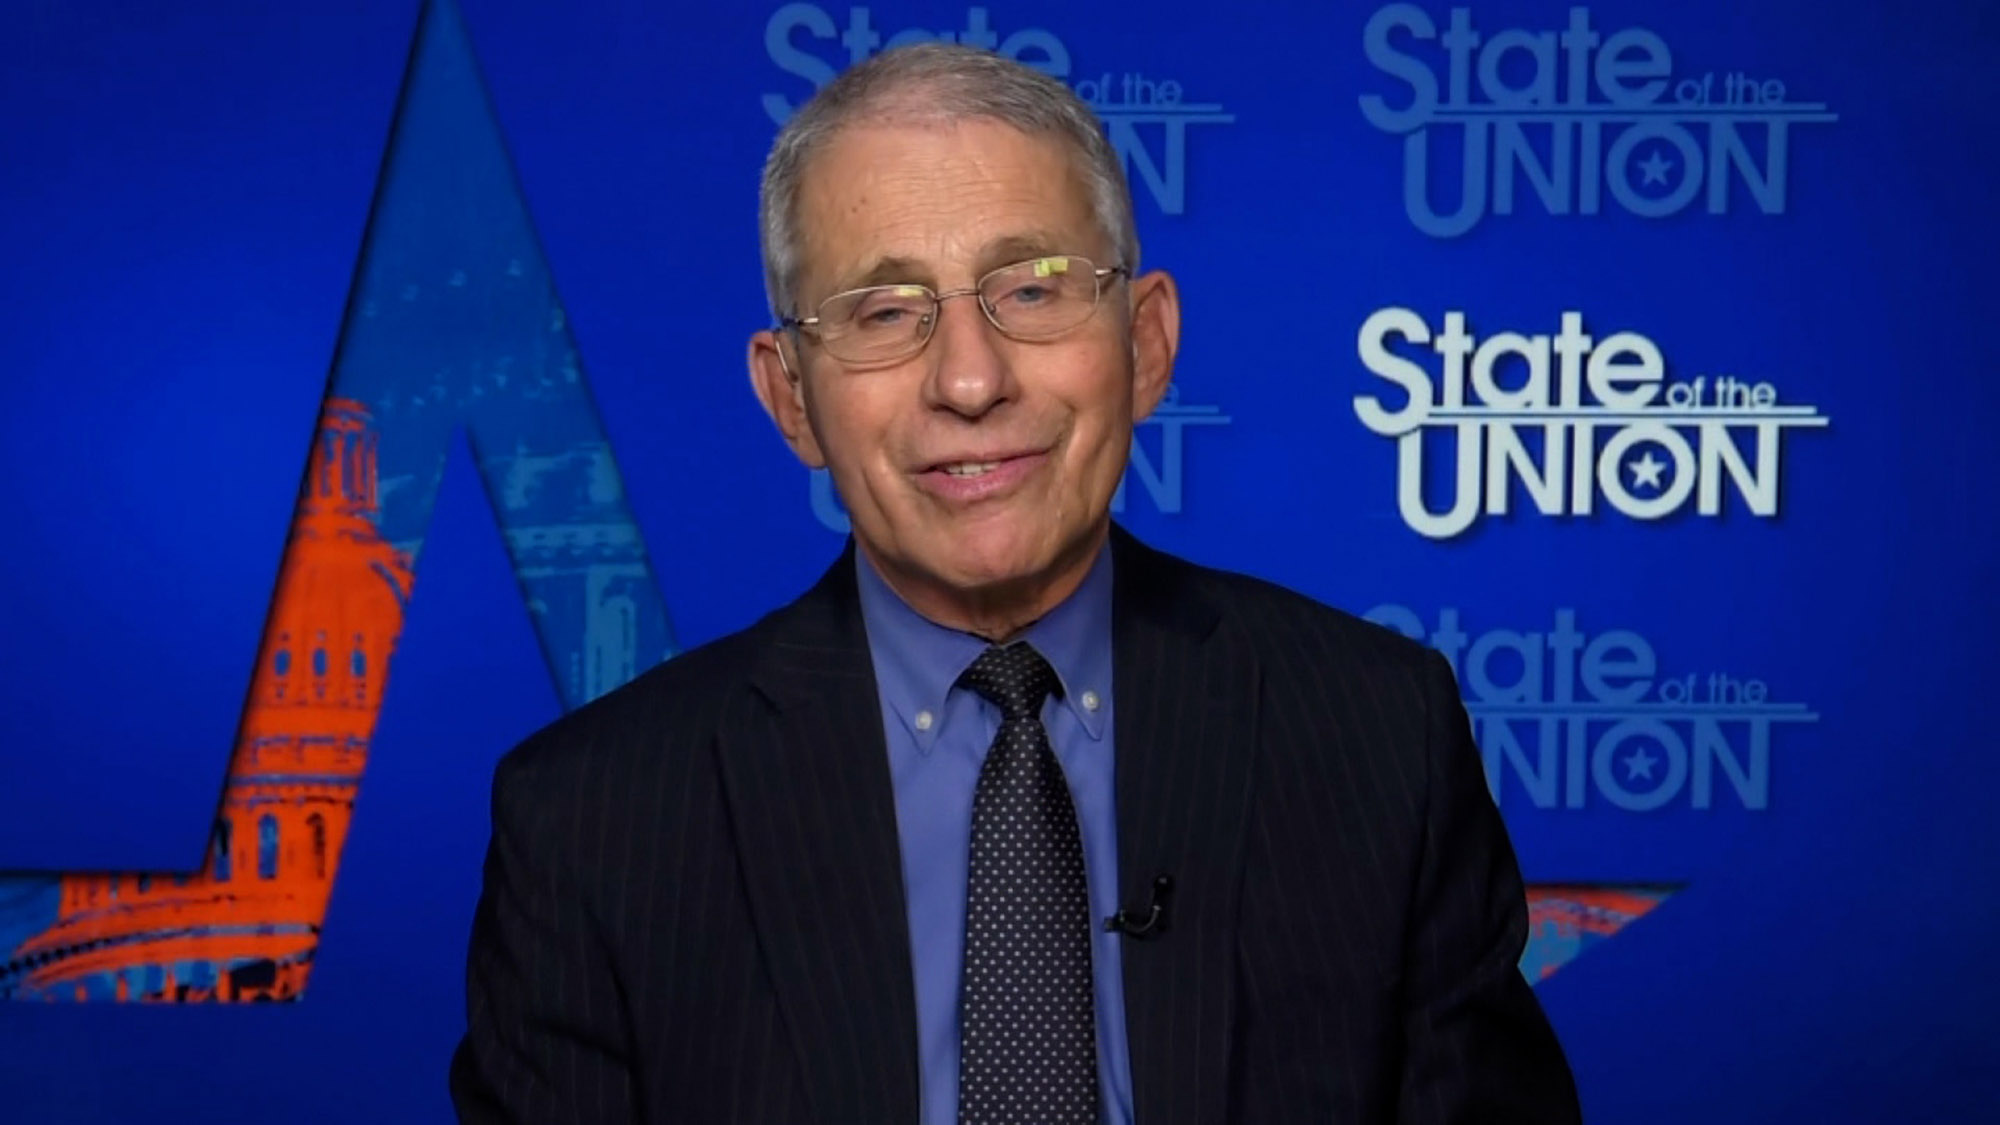 Fauci: 'I would take whatever vaccine would be available to me'